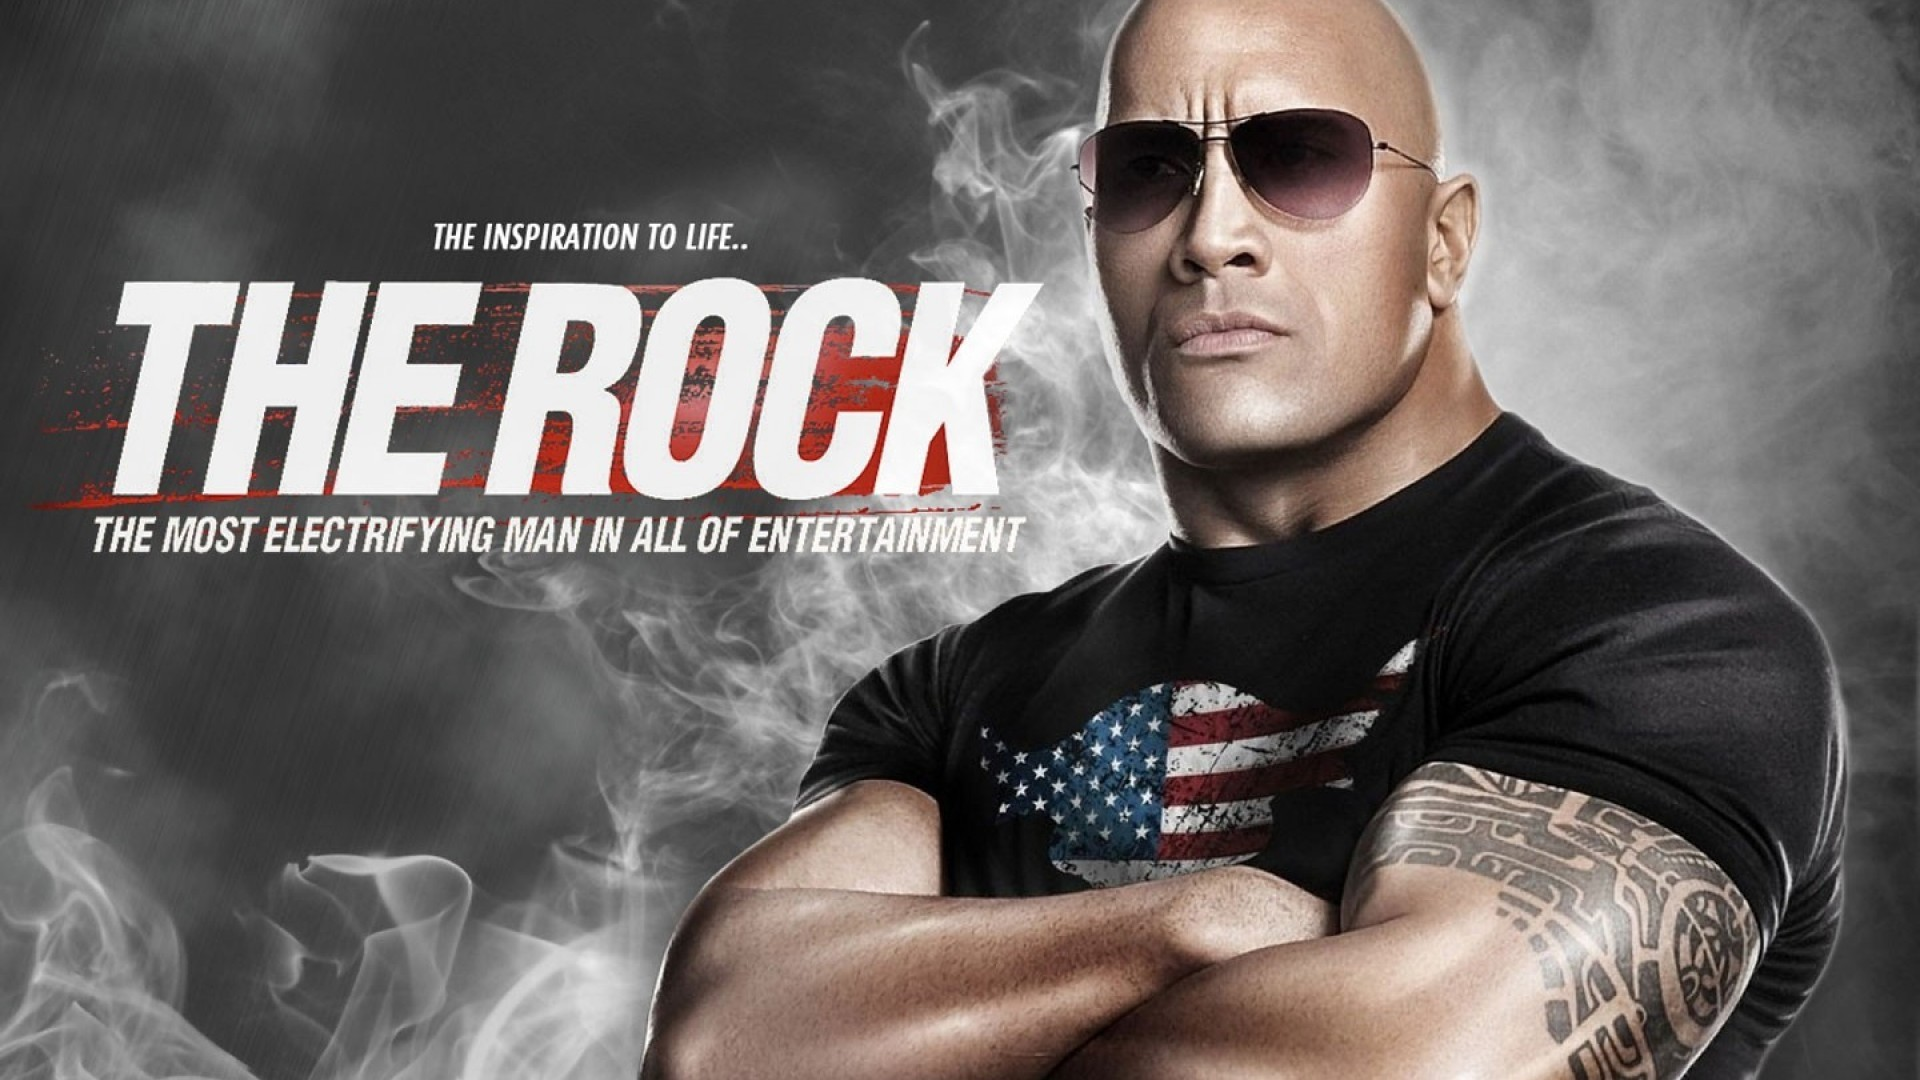 1920x1080 The Rock HD Pictures 2 whb #TheRockHDPictures #TheRock #WWETheRock #wwe  #wrestling